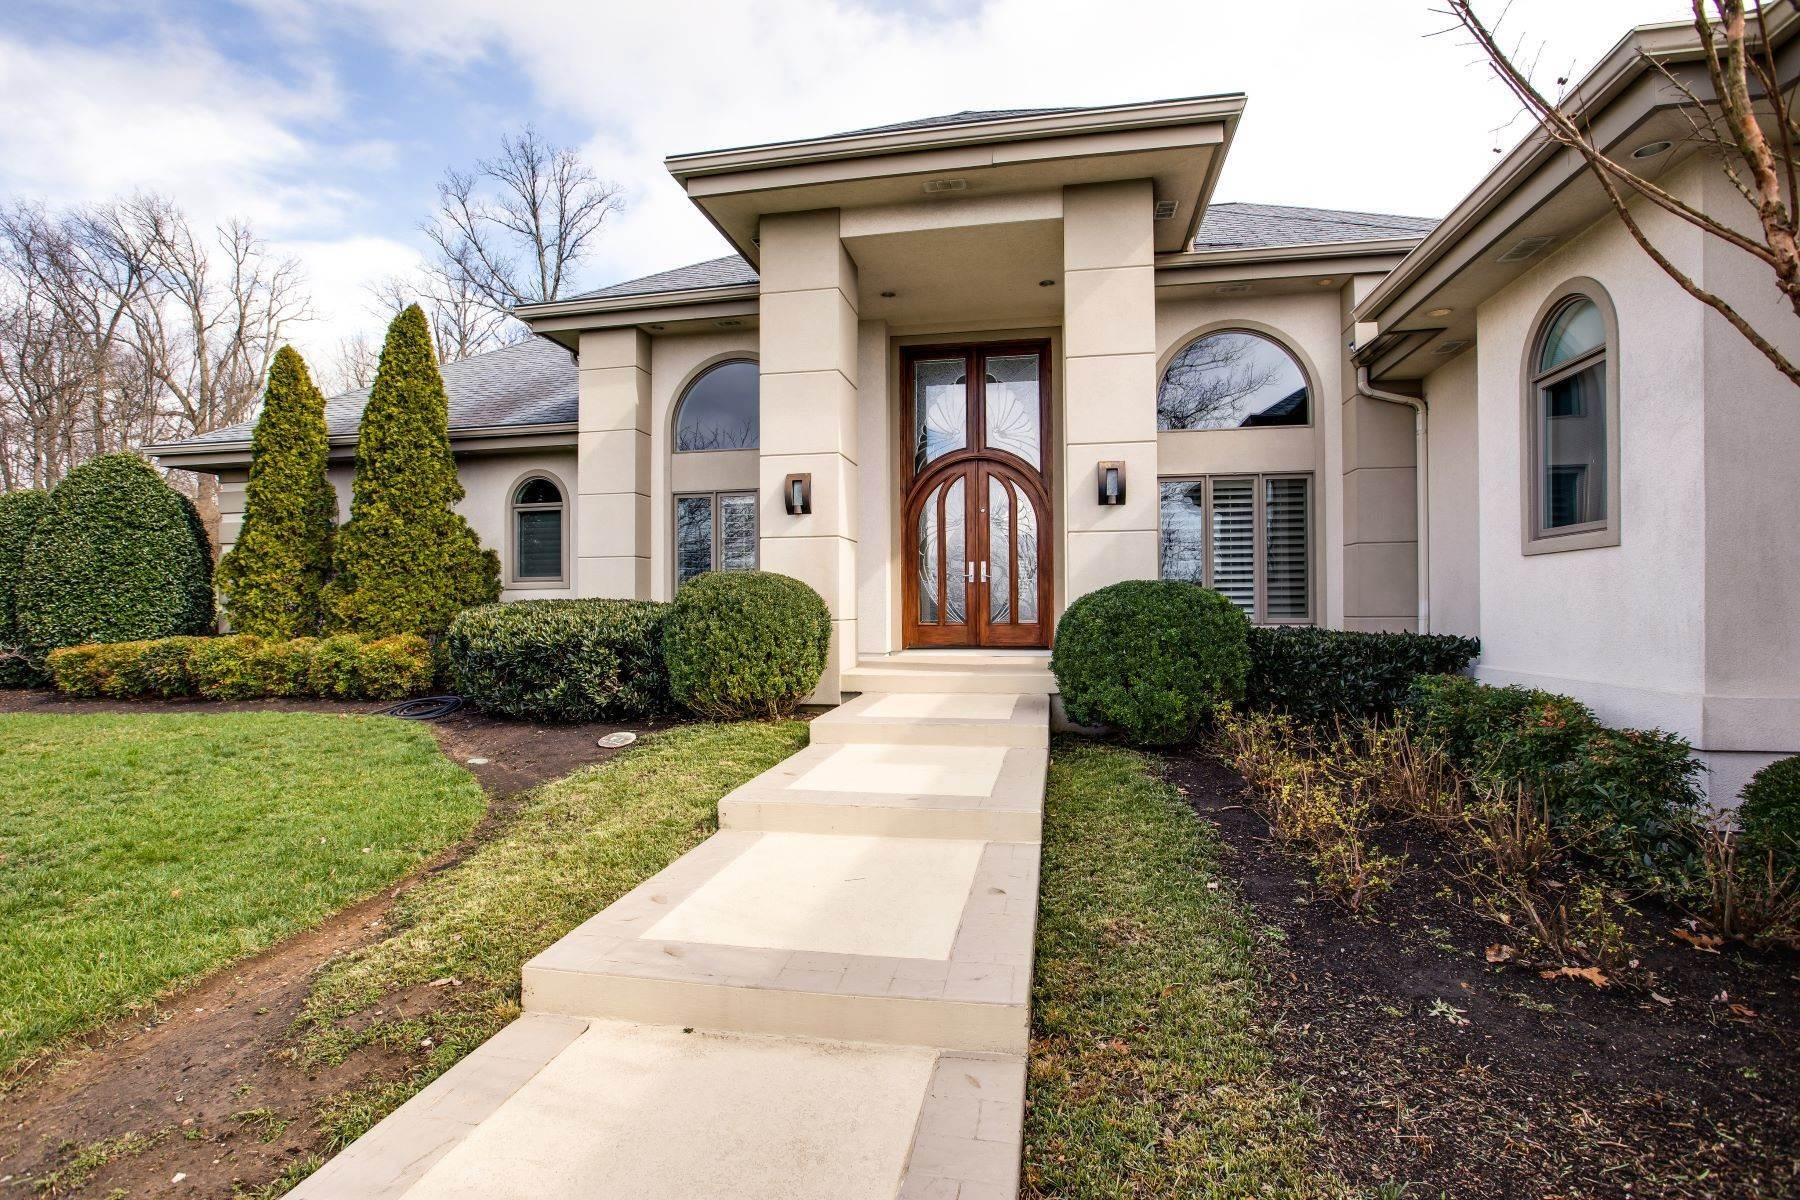 2. Single Family Homes for Sale at Luxury Brentwood Home 720 Valhalla Lane Brentwood, Tennessee 37027 United States